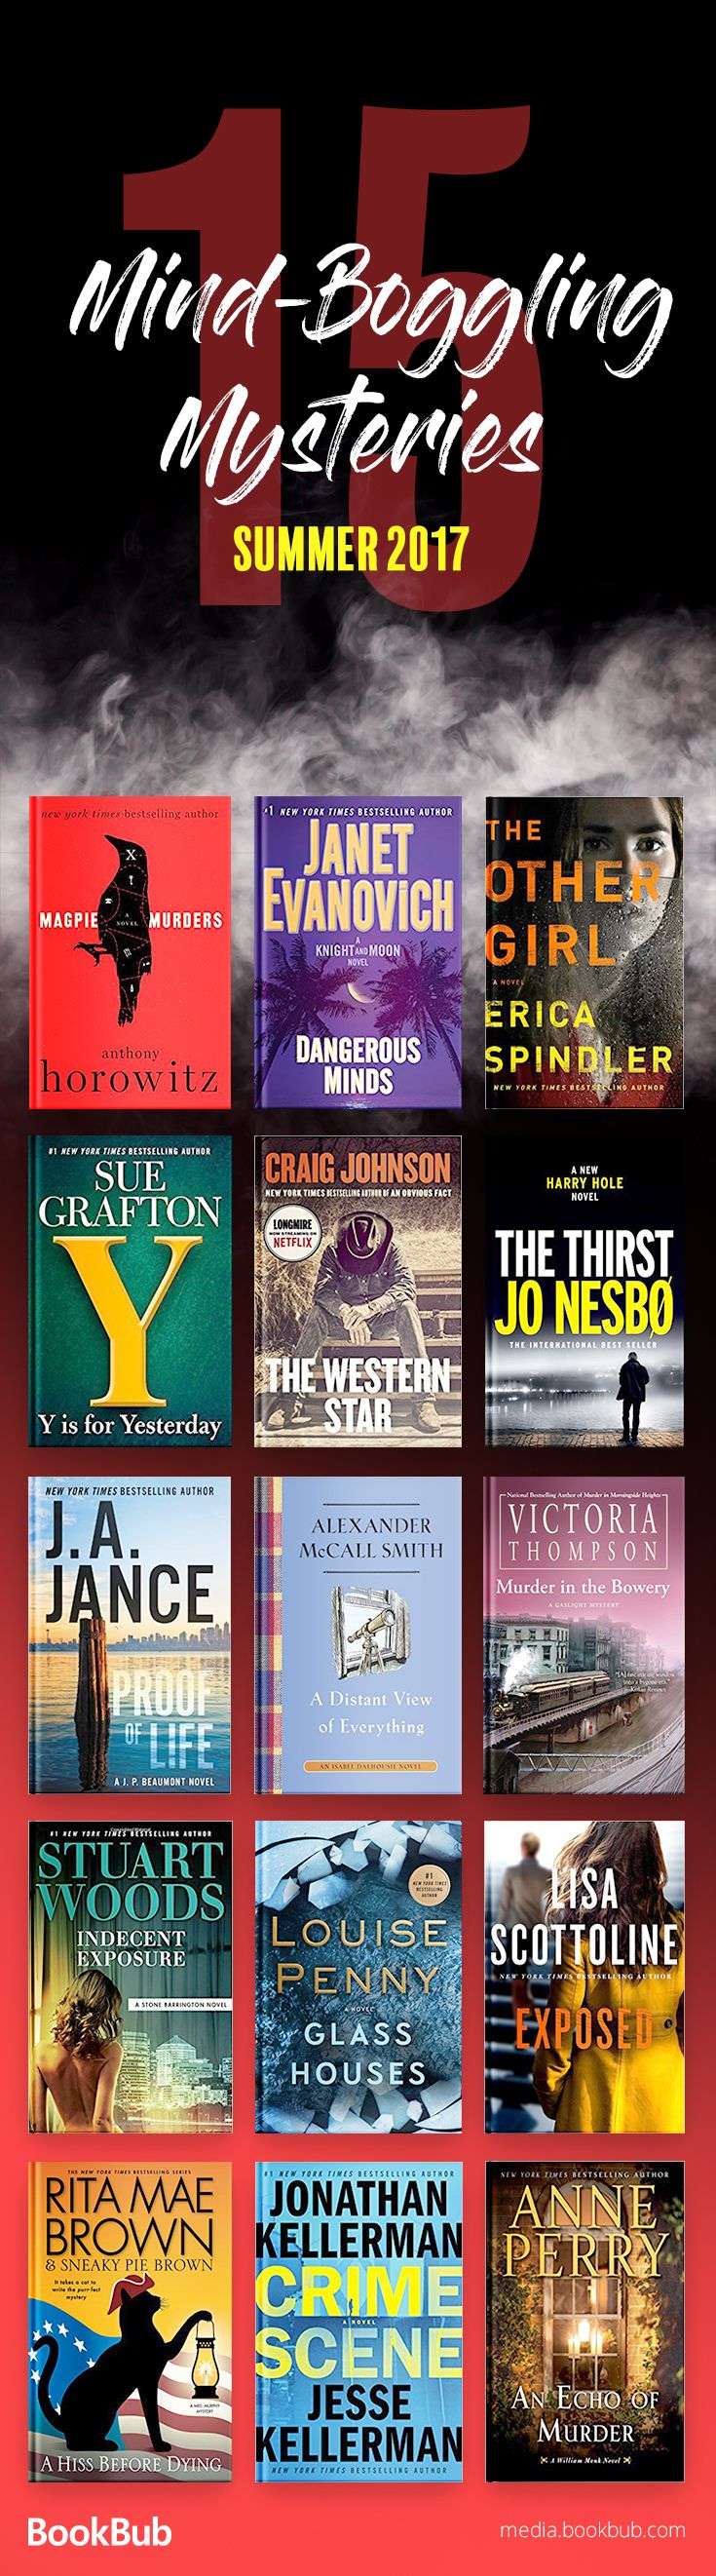 15 suspenseful mystery books to read in 2017. If you love twisty books, these novels are for you.